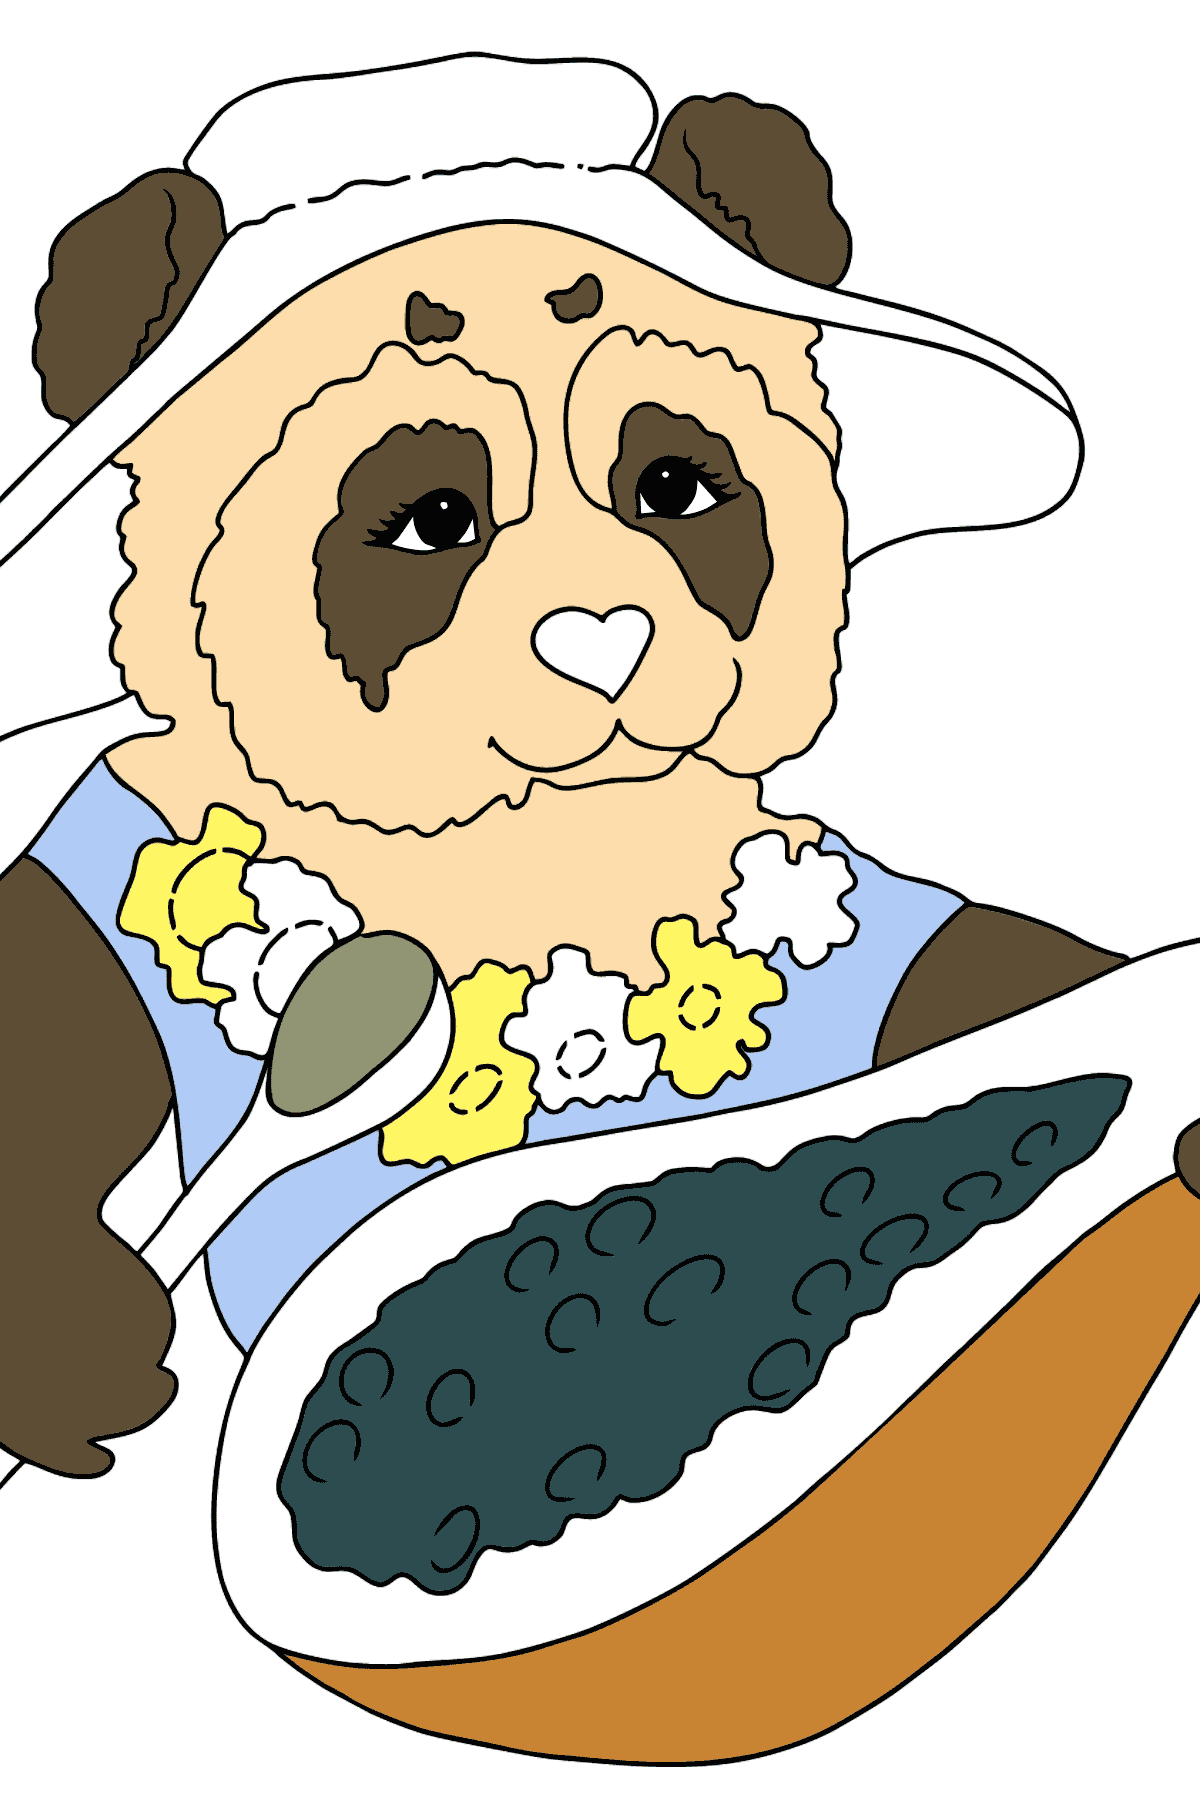 Coloring Page - A Panda is Eating - Coloring Pages for Kids